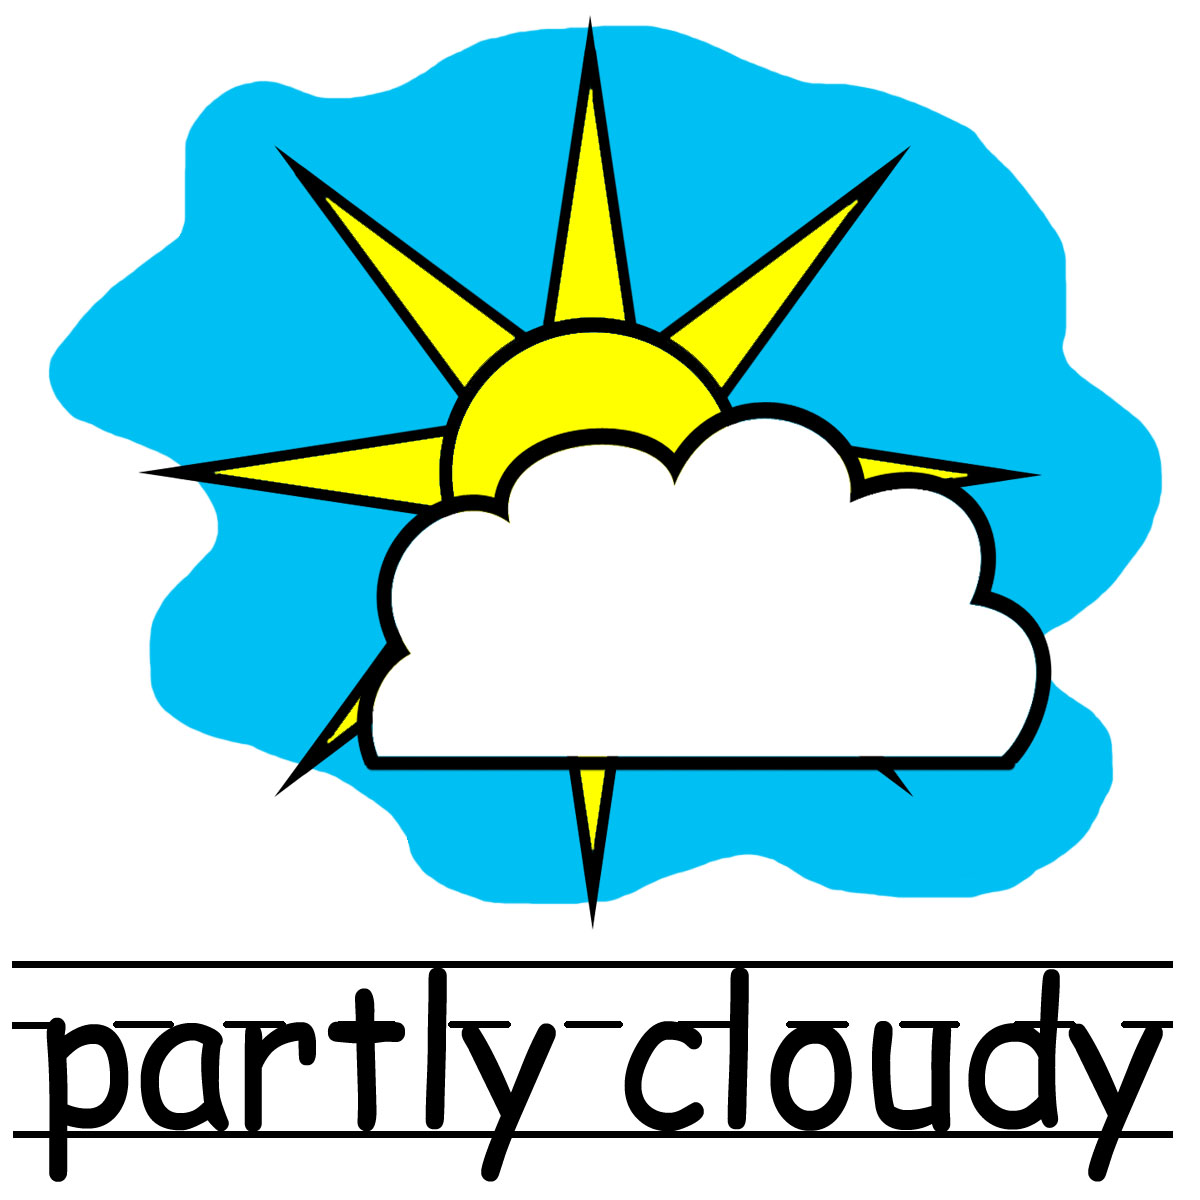 Cloudy clipart partly cloudy. Black and white panda